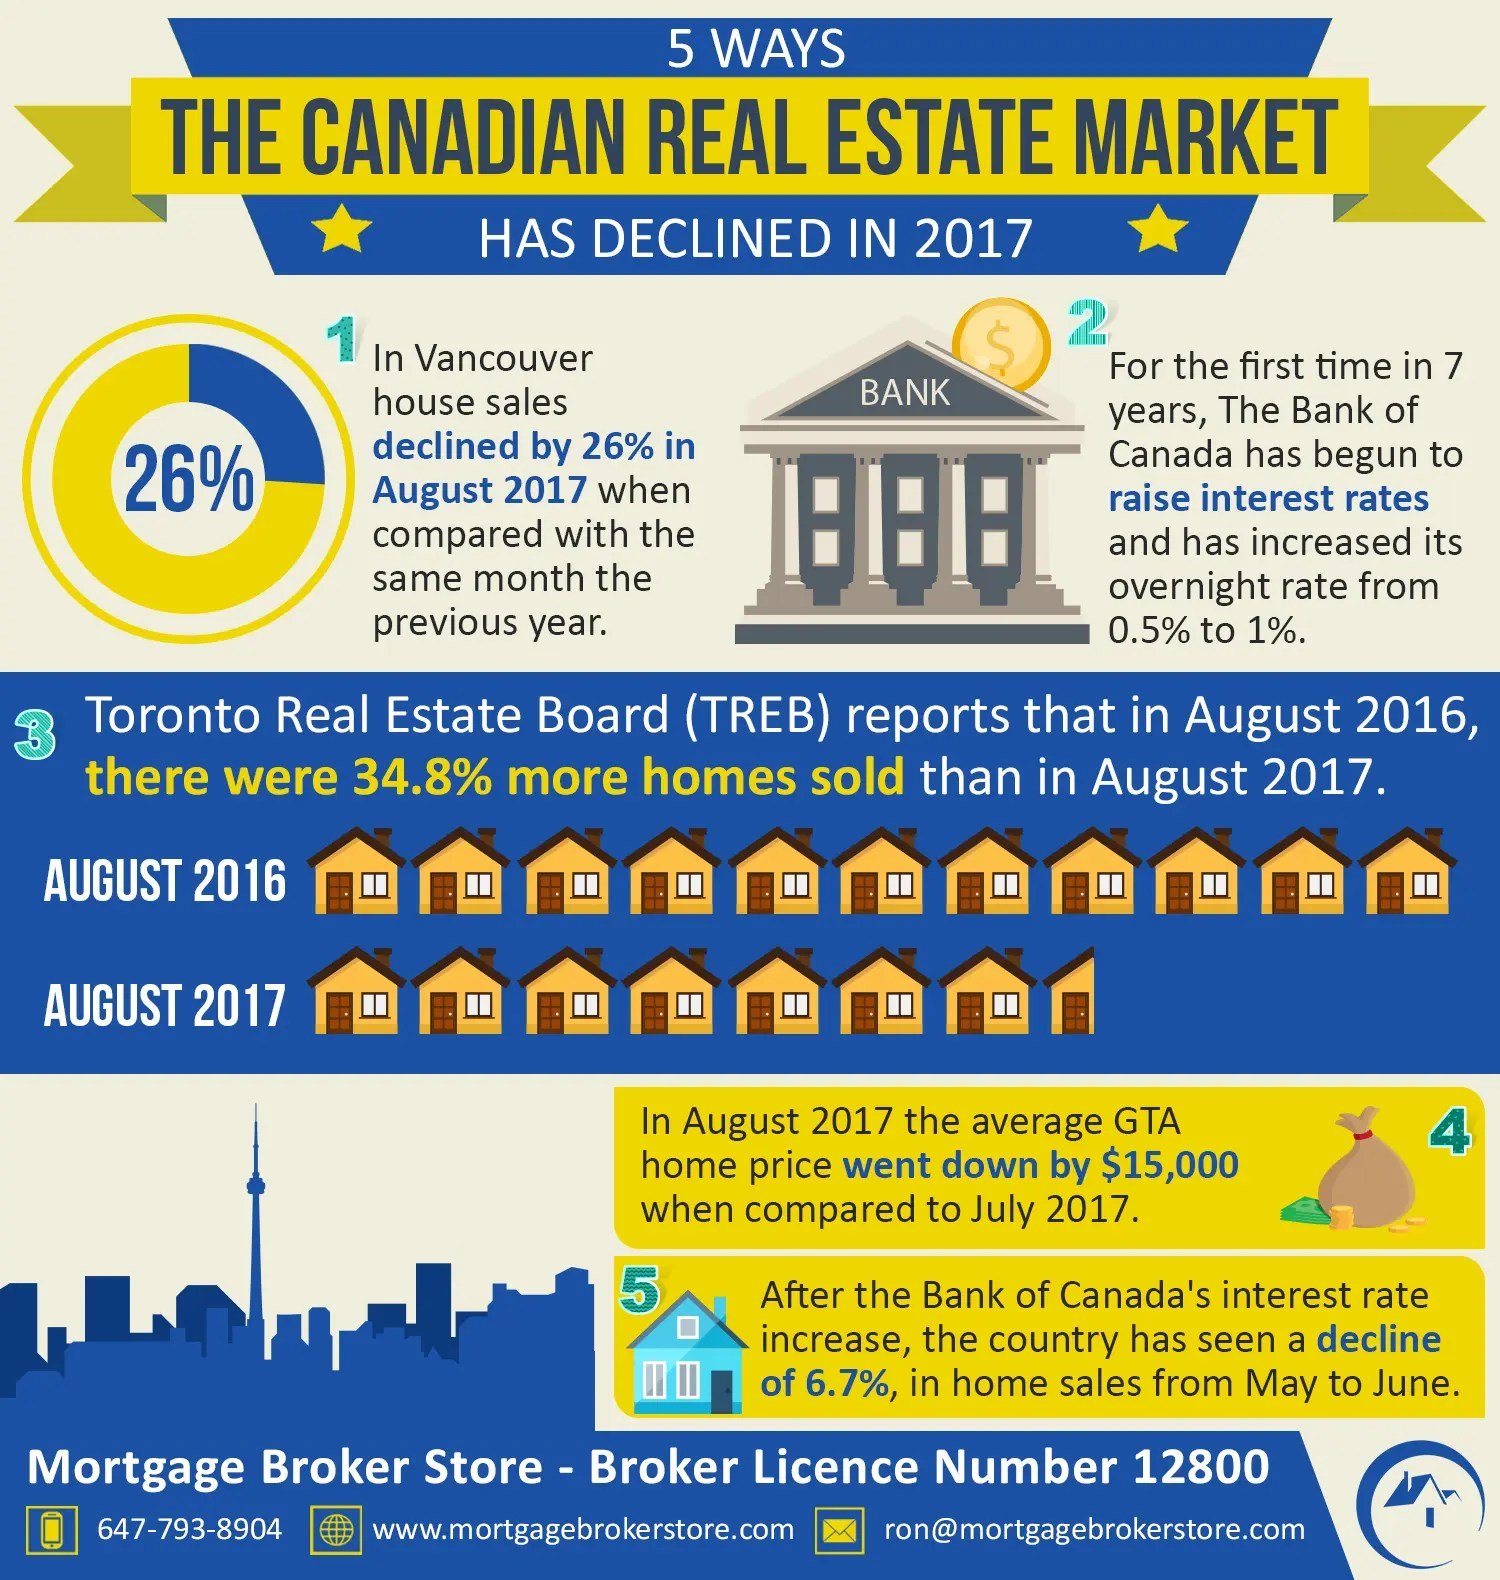 Home Bank Of Canada 5 Ways The Canadian Real Estate Market Has Declined In 2017